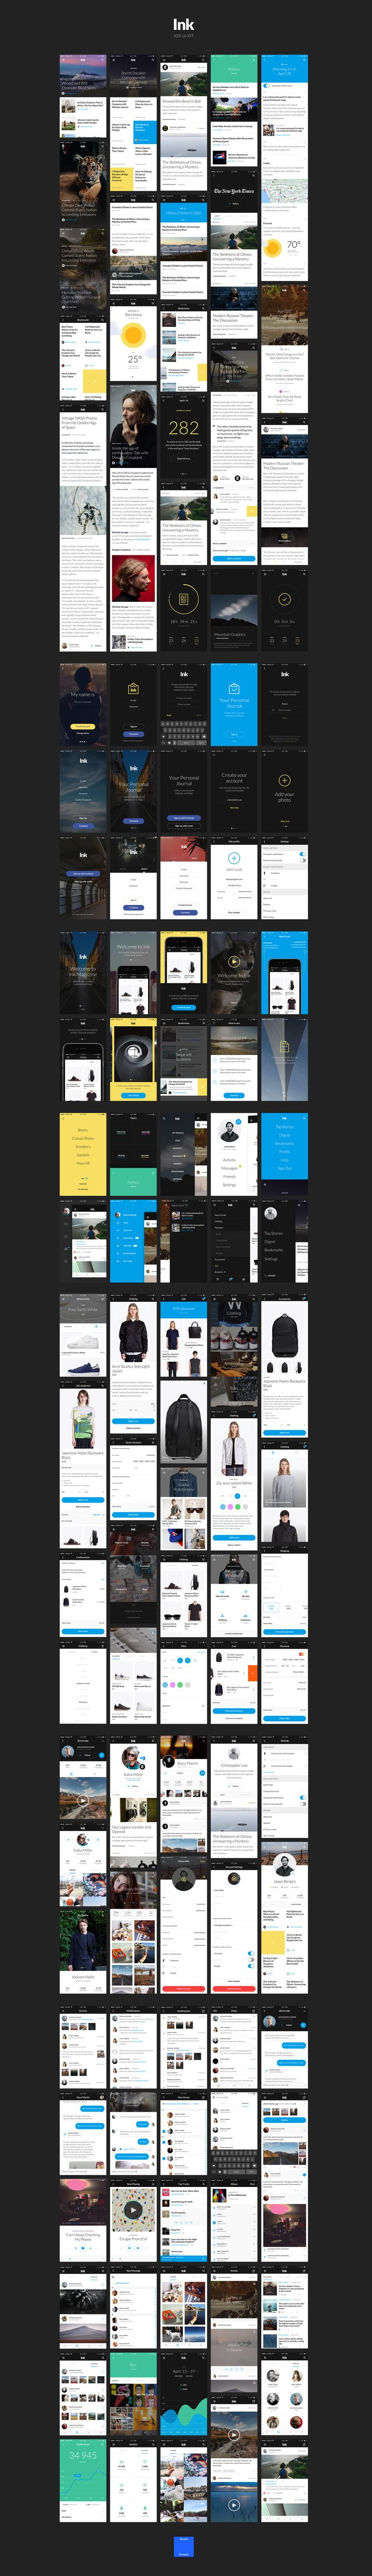 Ink UI Kit - 120+ iOS screens by Great Simple on Creative Market